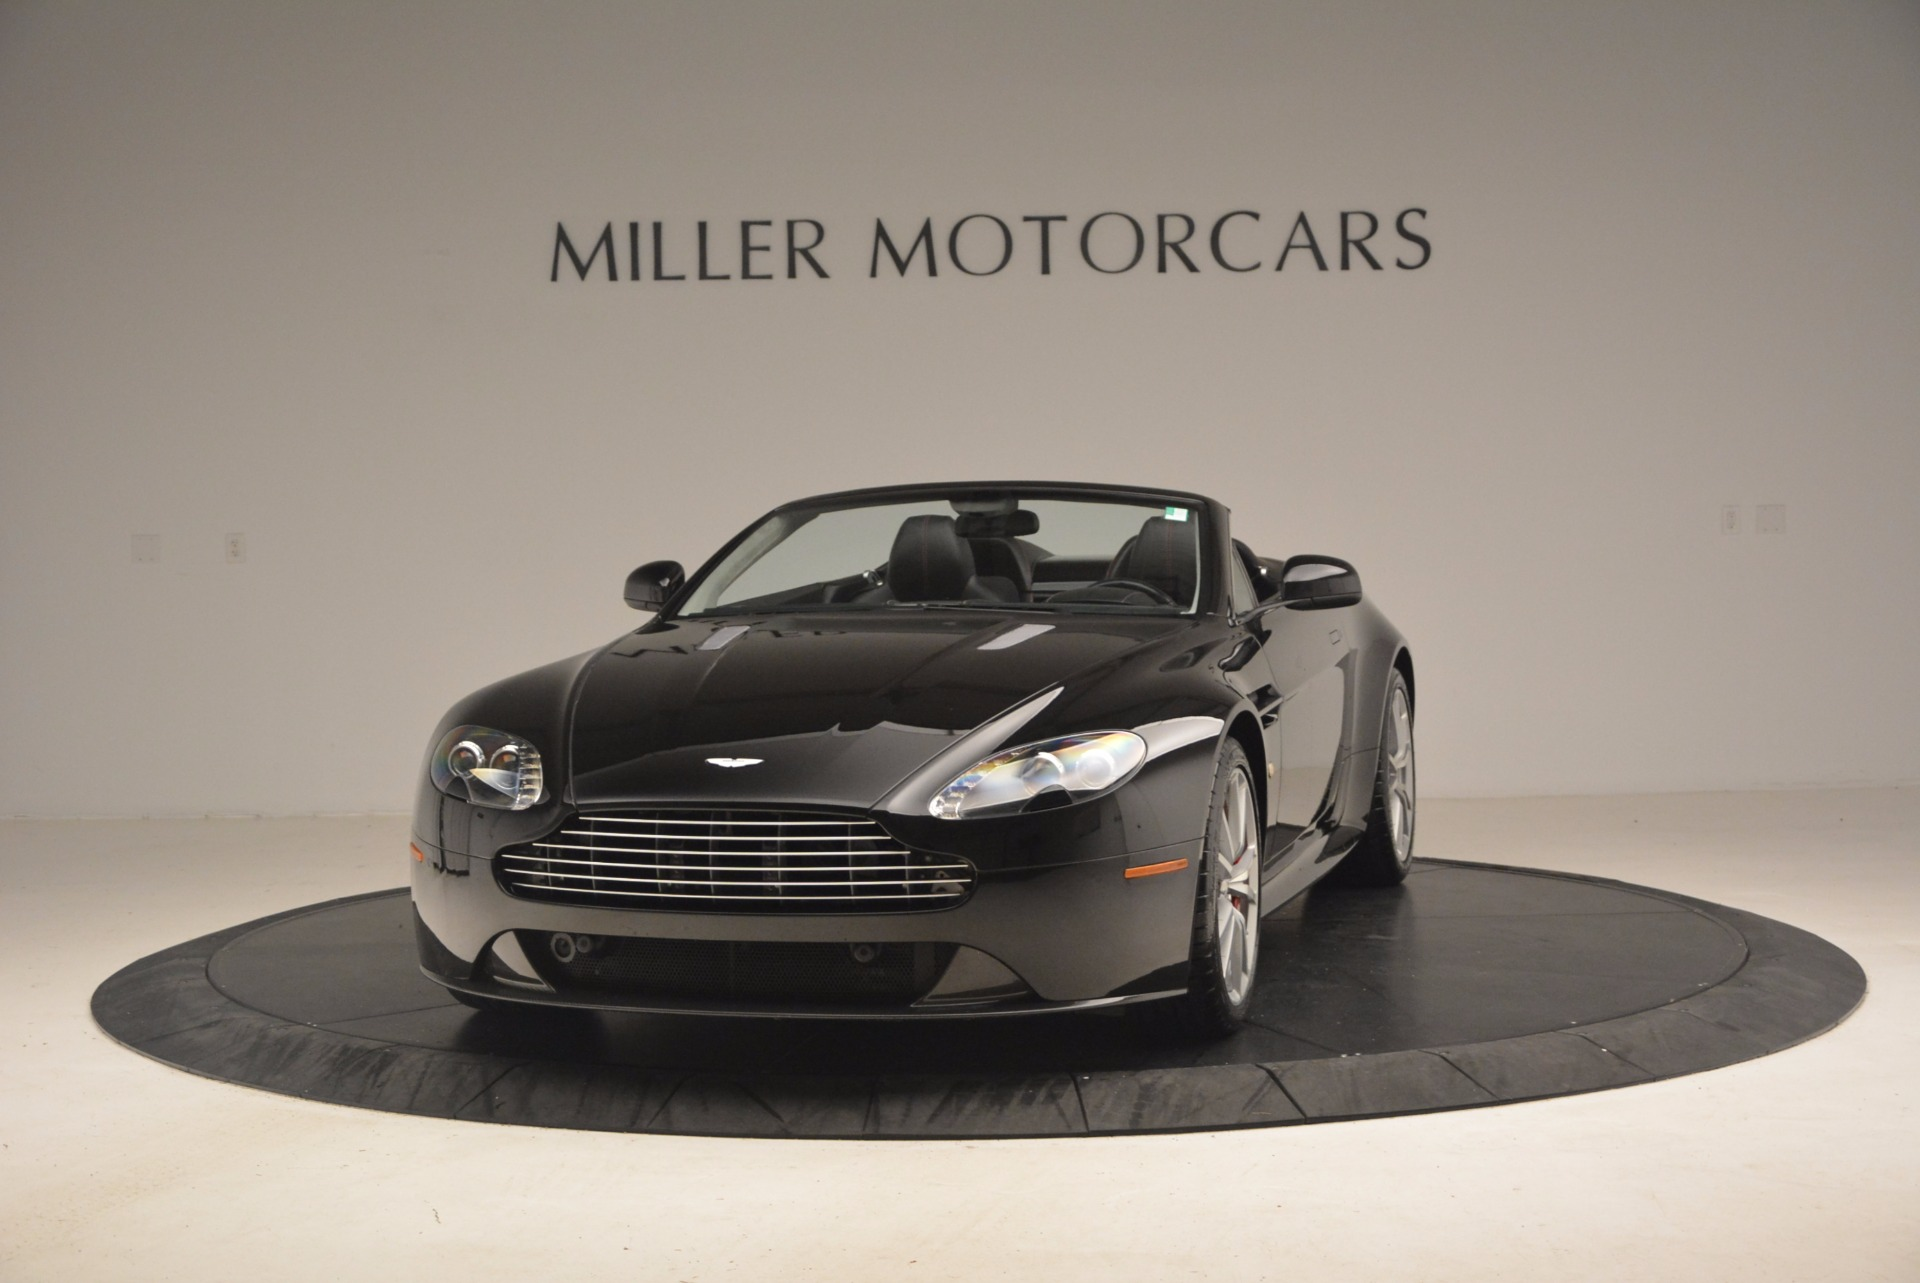 Used 2012 Aston Martin V8 Vantage S Roadster for sale Sold at Bentley Greenwich in Greenwich CT 06830 1